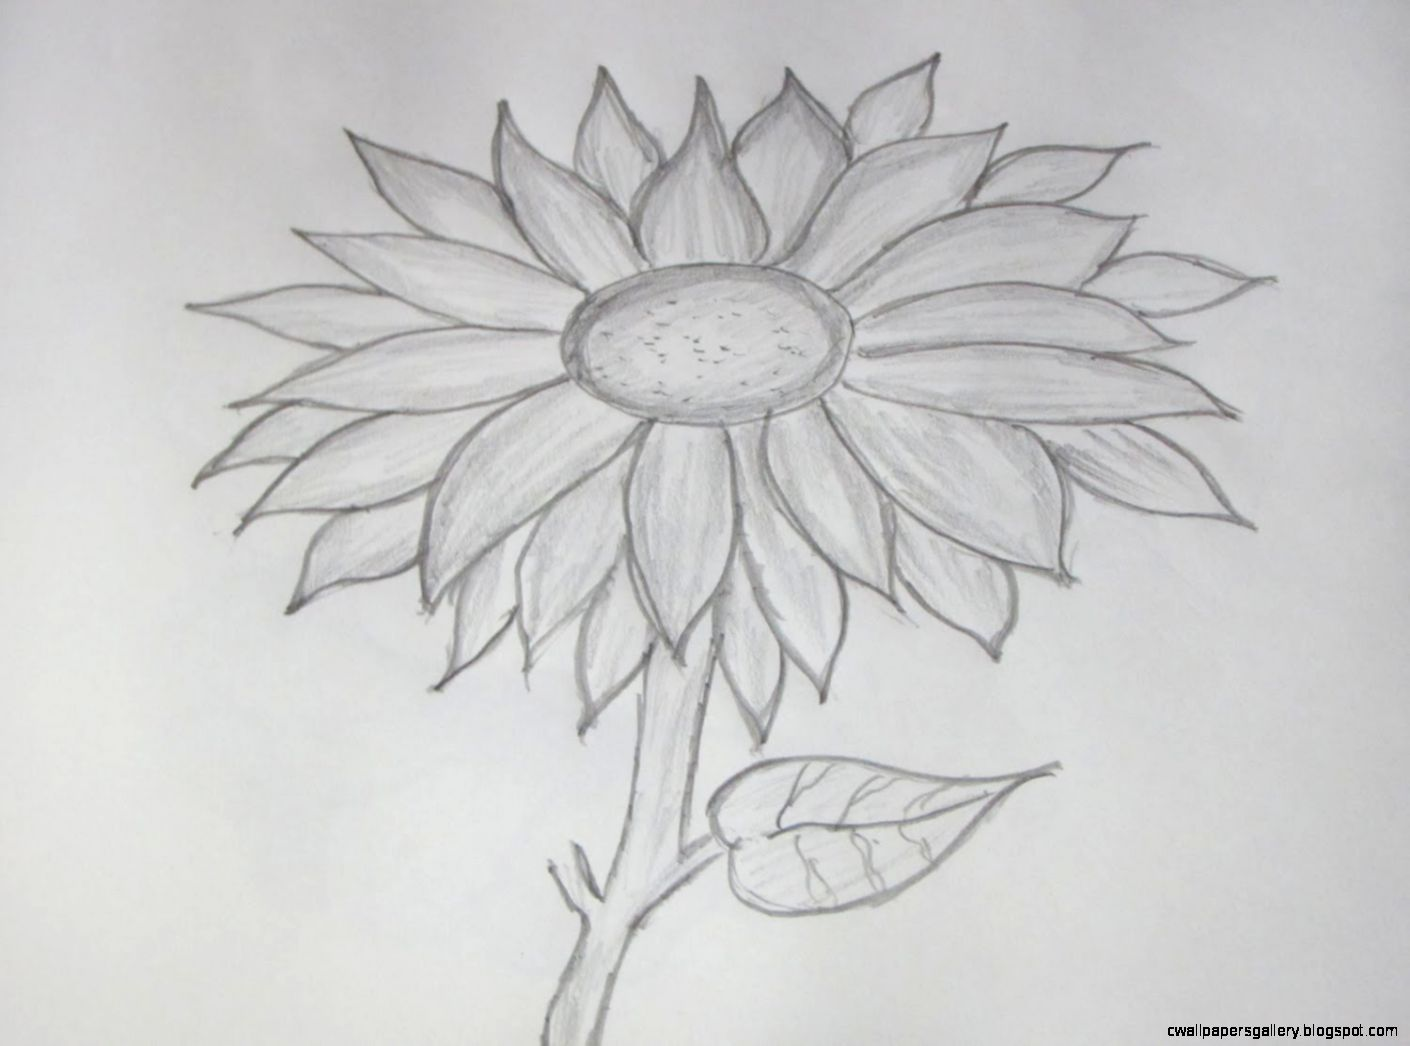 How to Draw and Sketch a Sunflower using Pencil   YouTube